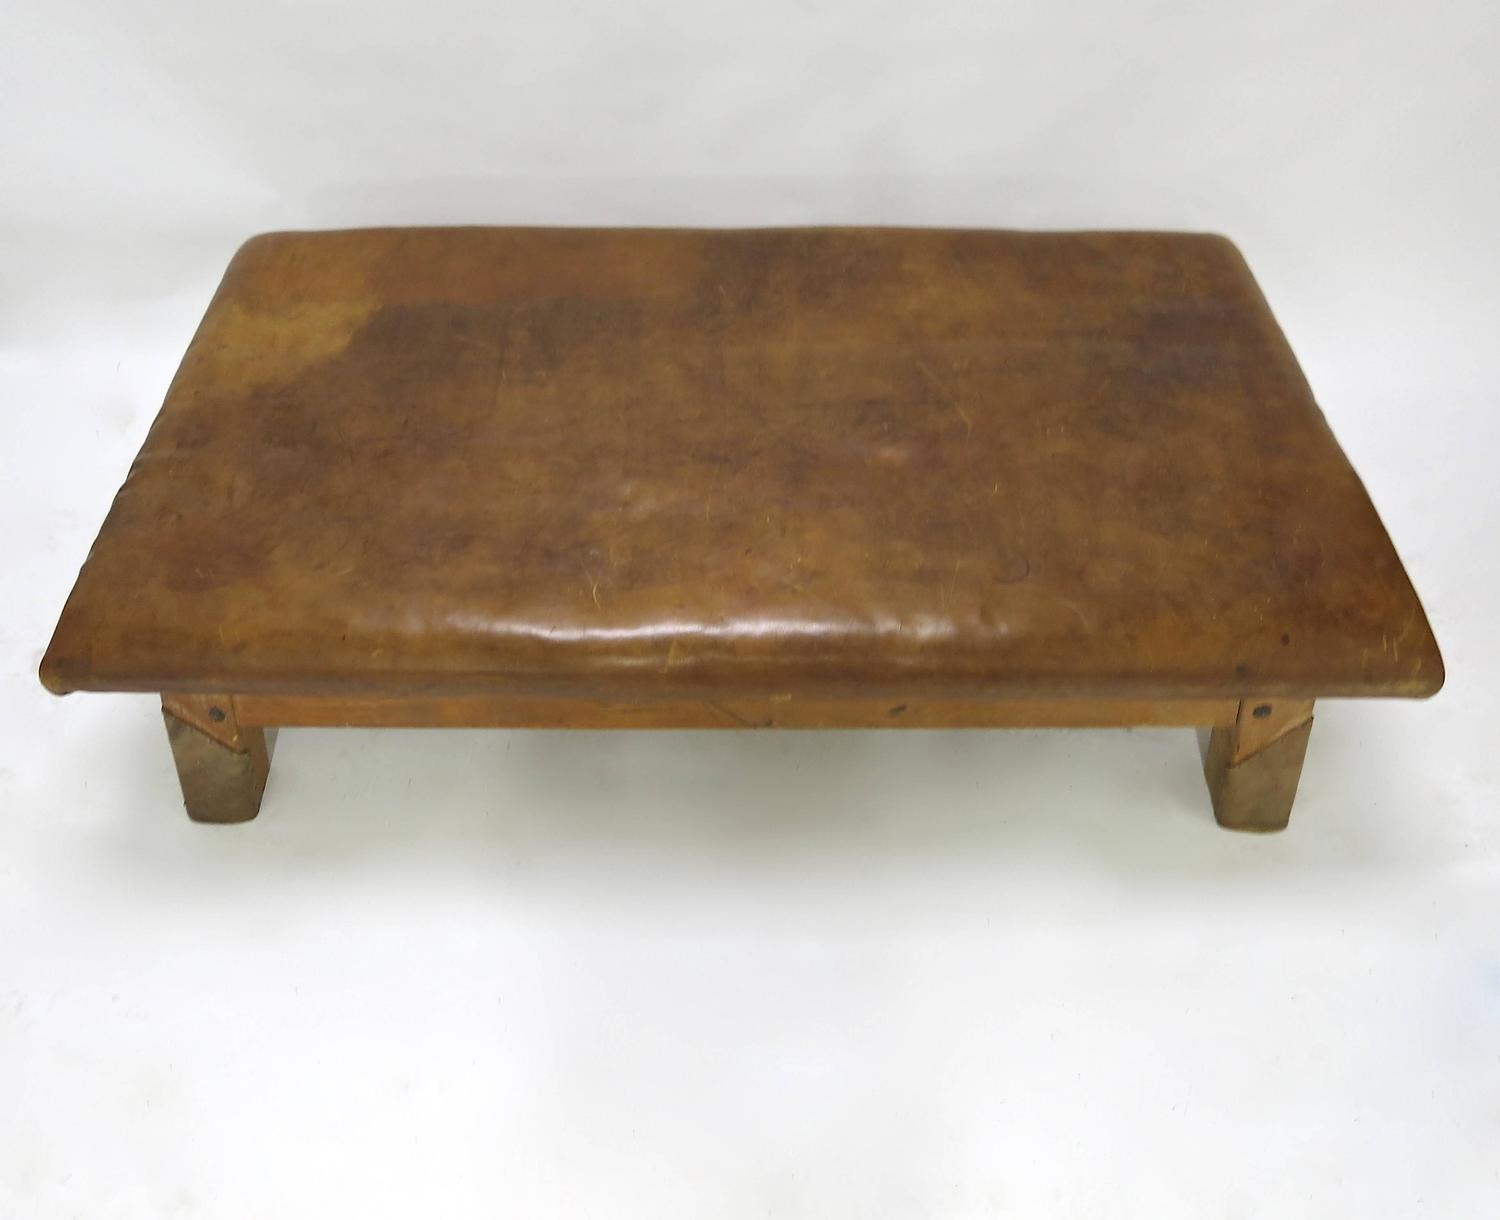 Vintage Leather Gym Bench Or Table Circa 1940 For Sale At